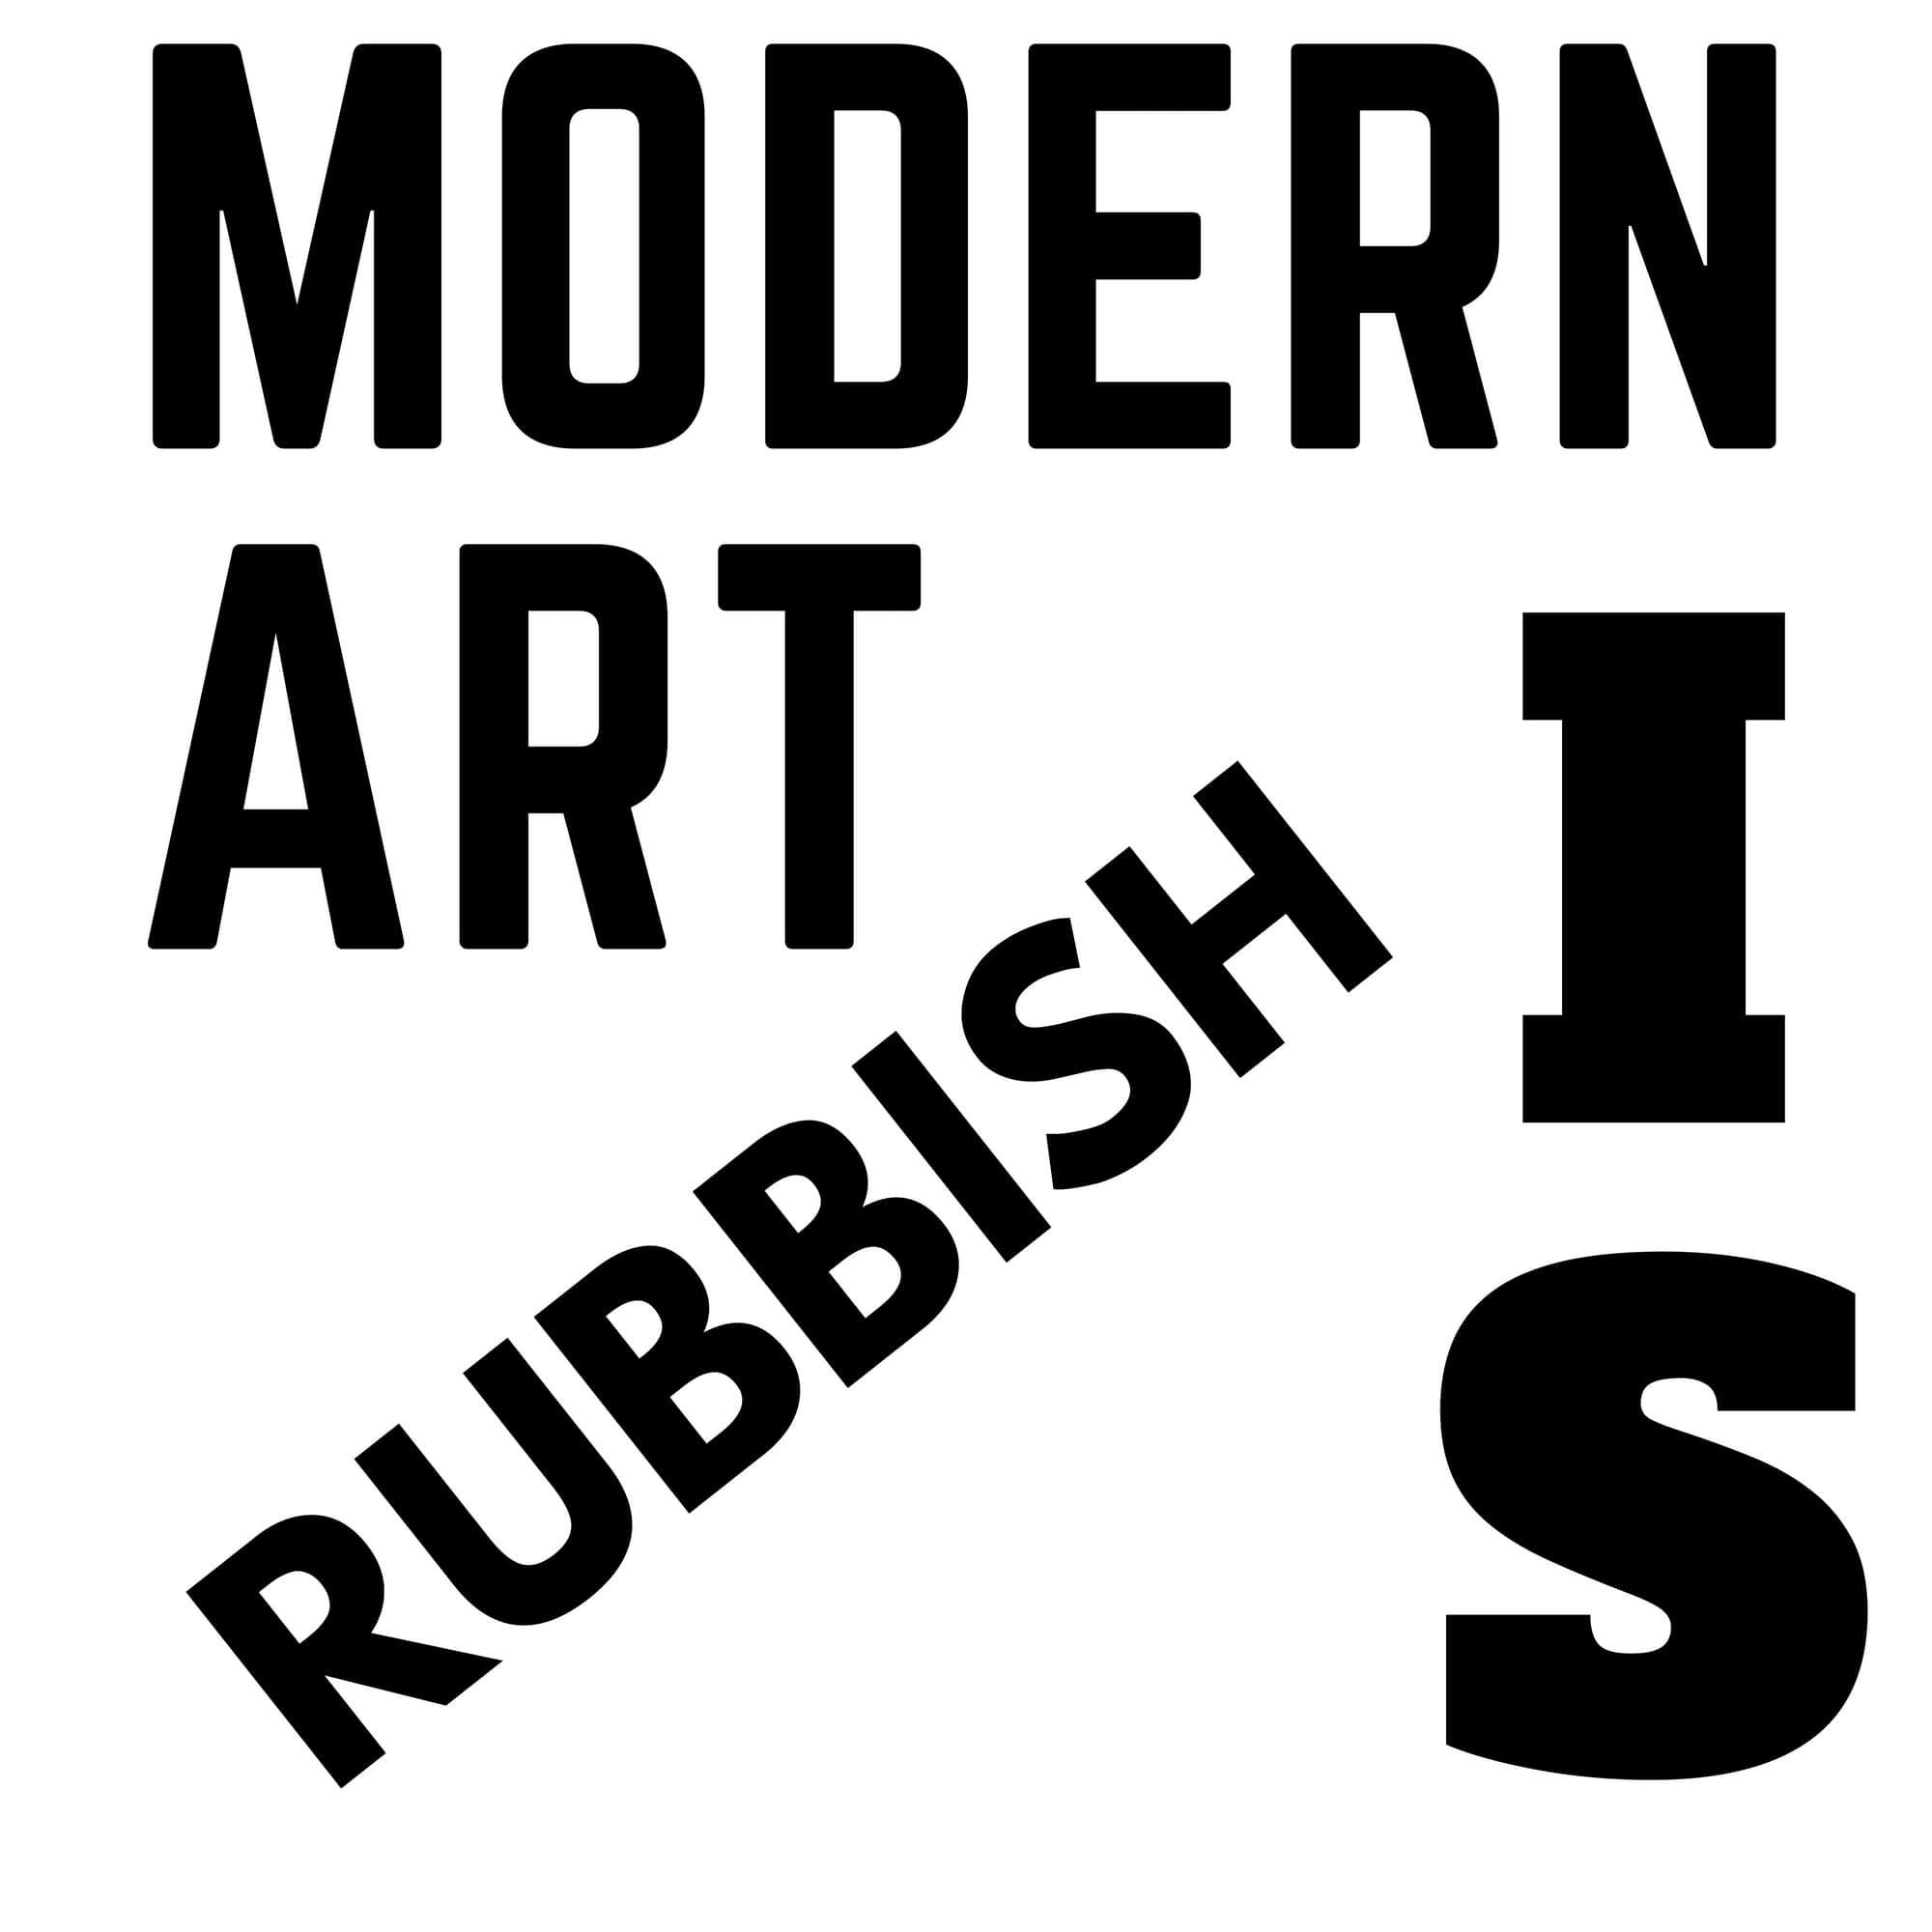 A Logo for Modern Art is Rubbish in Fluxus style font